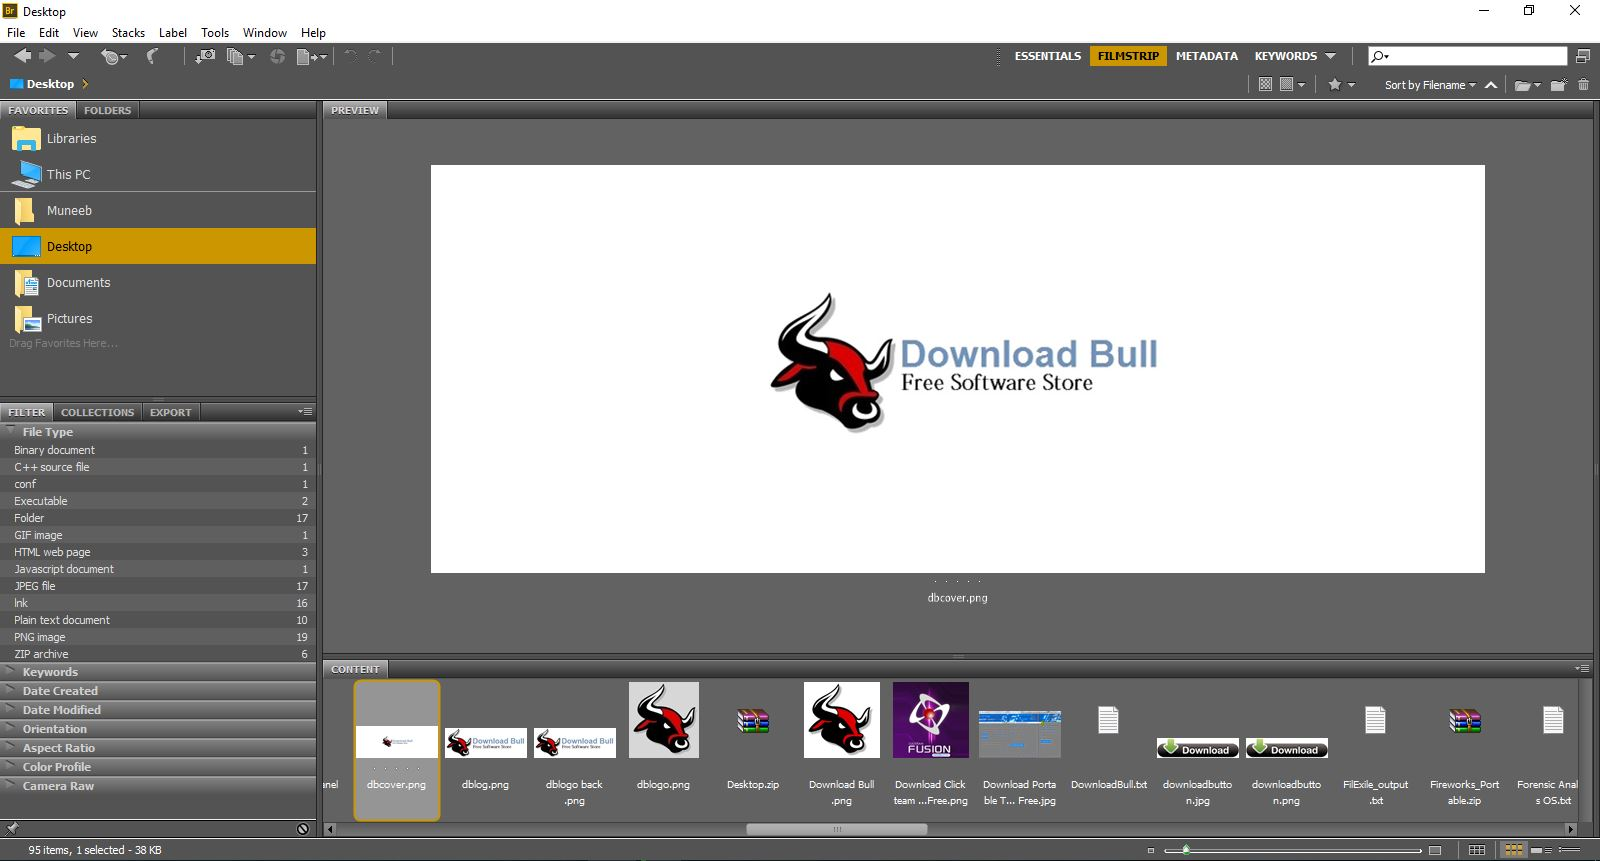 Portable Adobe Bridge CS6 Free Download – Download Bull